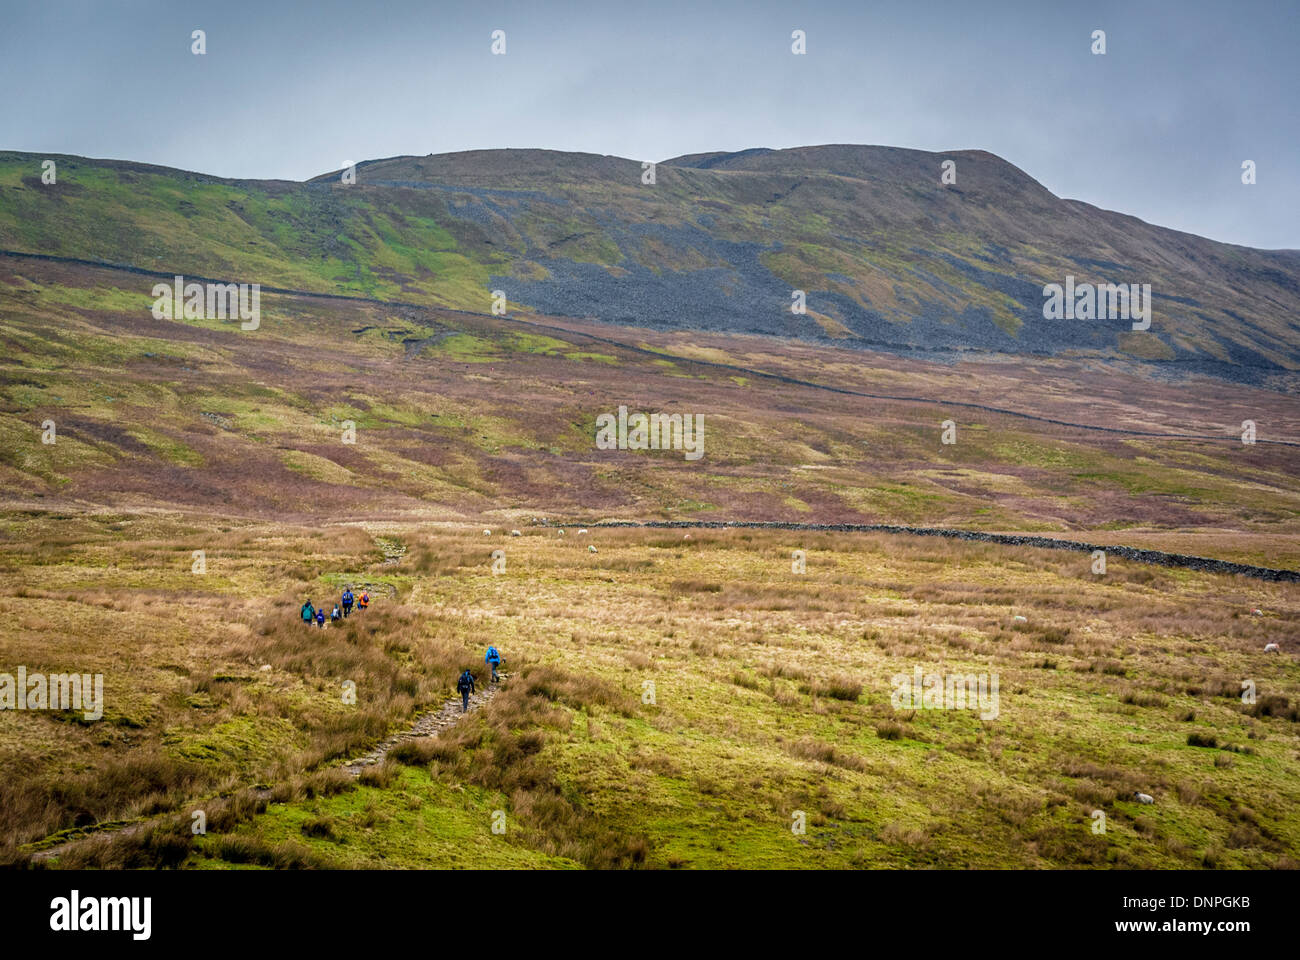 Whernside, North Yorkshire with walkers visible ascending. - Stock Image